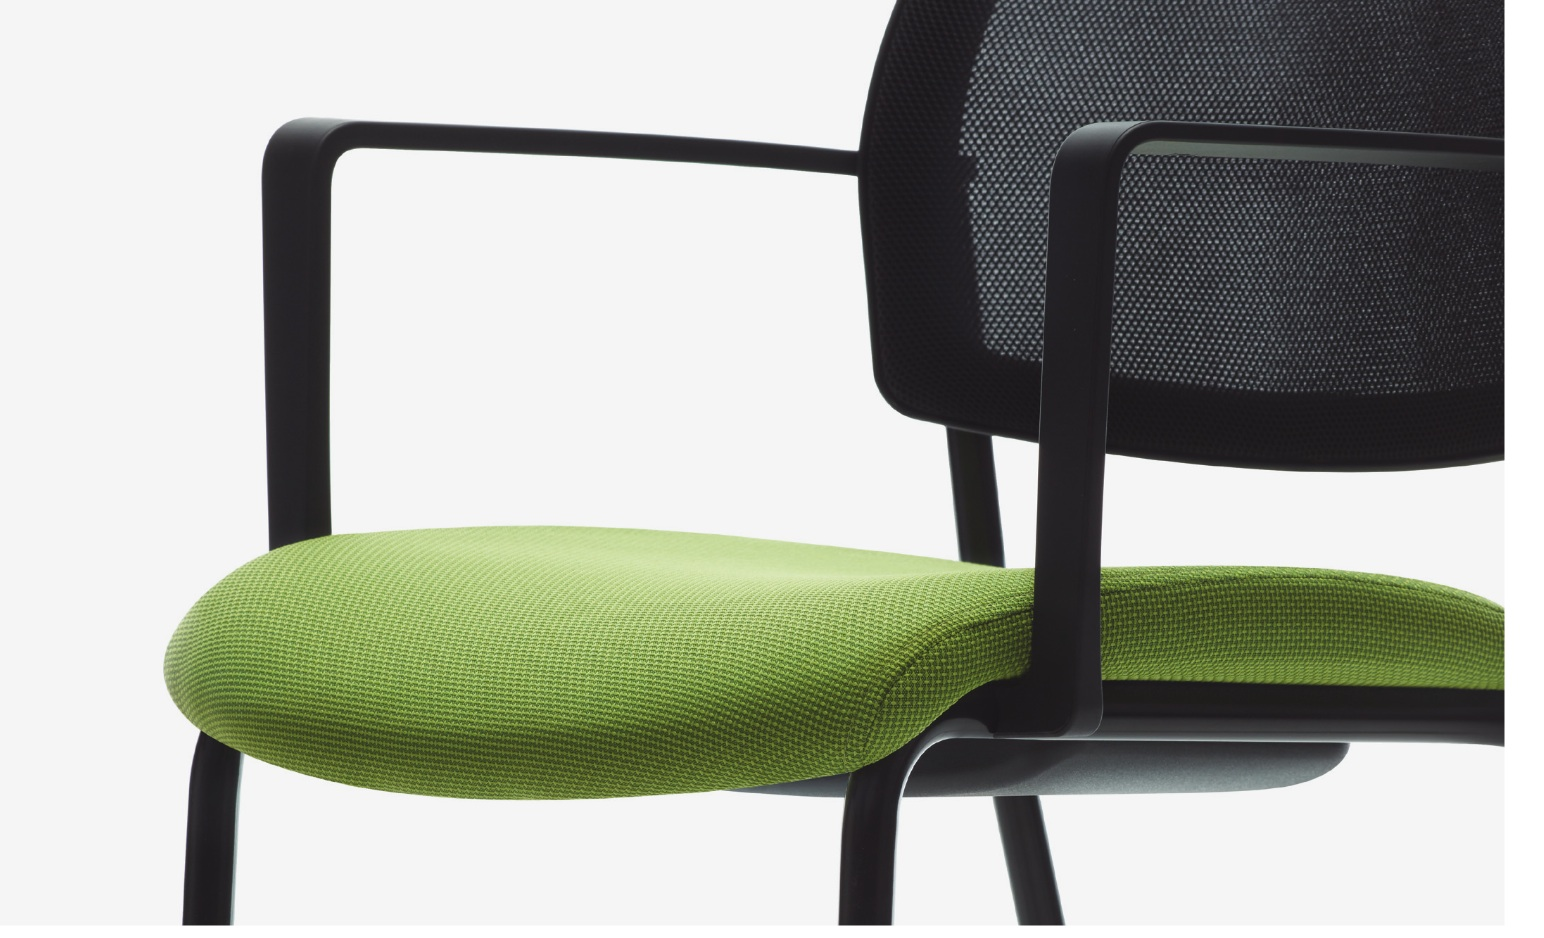 united chair medical stool patterned dining chairs adaptable healthcare seating from groupe lacasse and